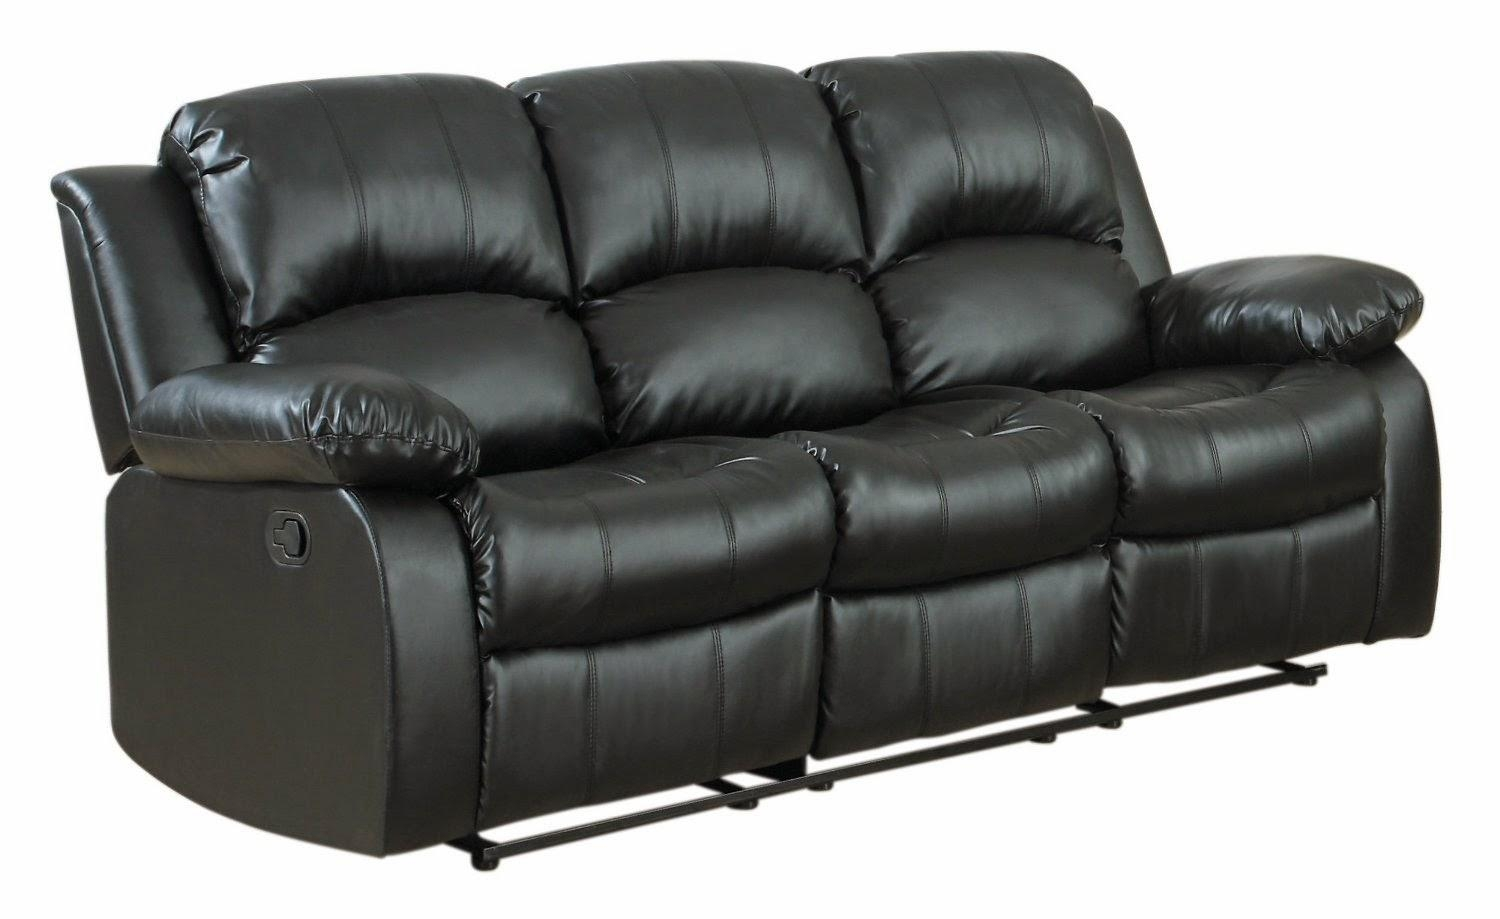 20 top berkline leather recliner sofas sofa ideas Reclining loveseat sale